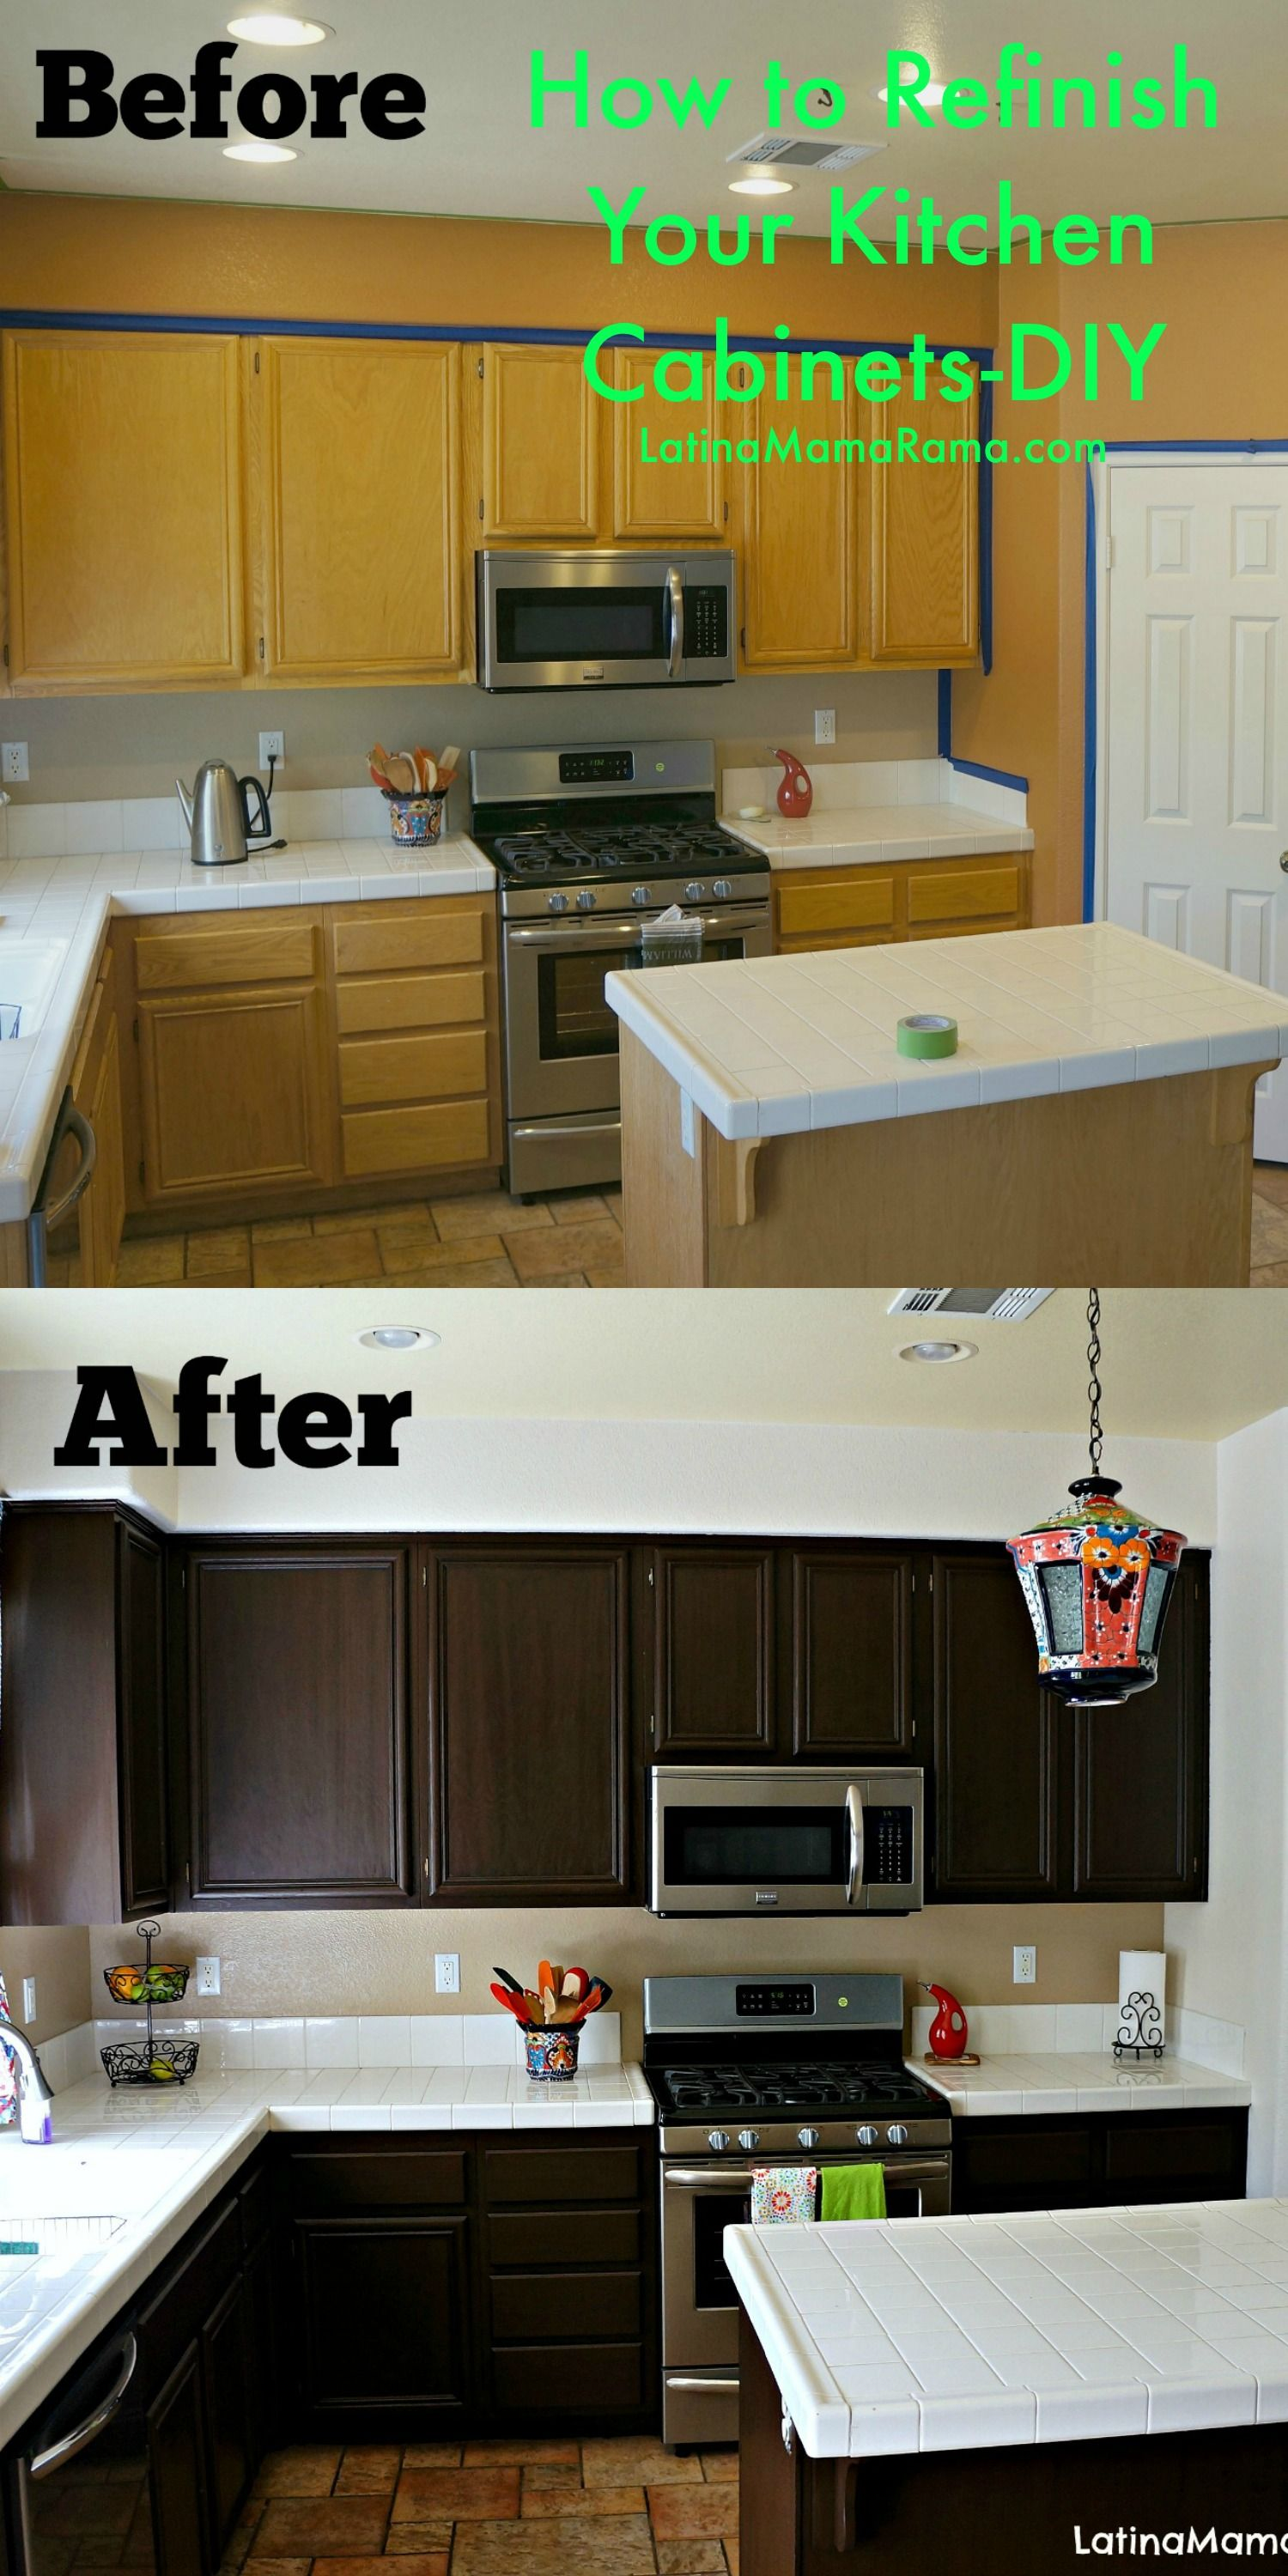 How To Refinish Your Kitchen Cabinets CrAfTy ThE CoReDIY GaLoRe - Refurbish kitchen cabinets